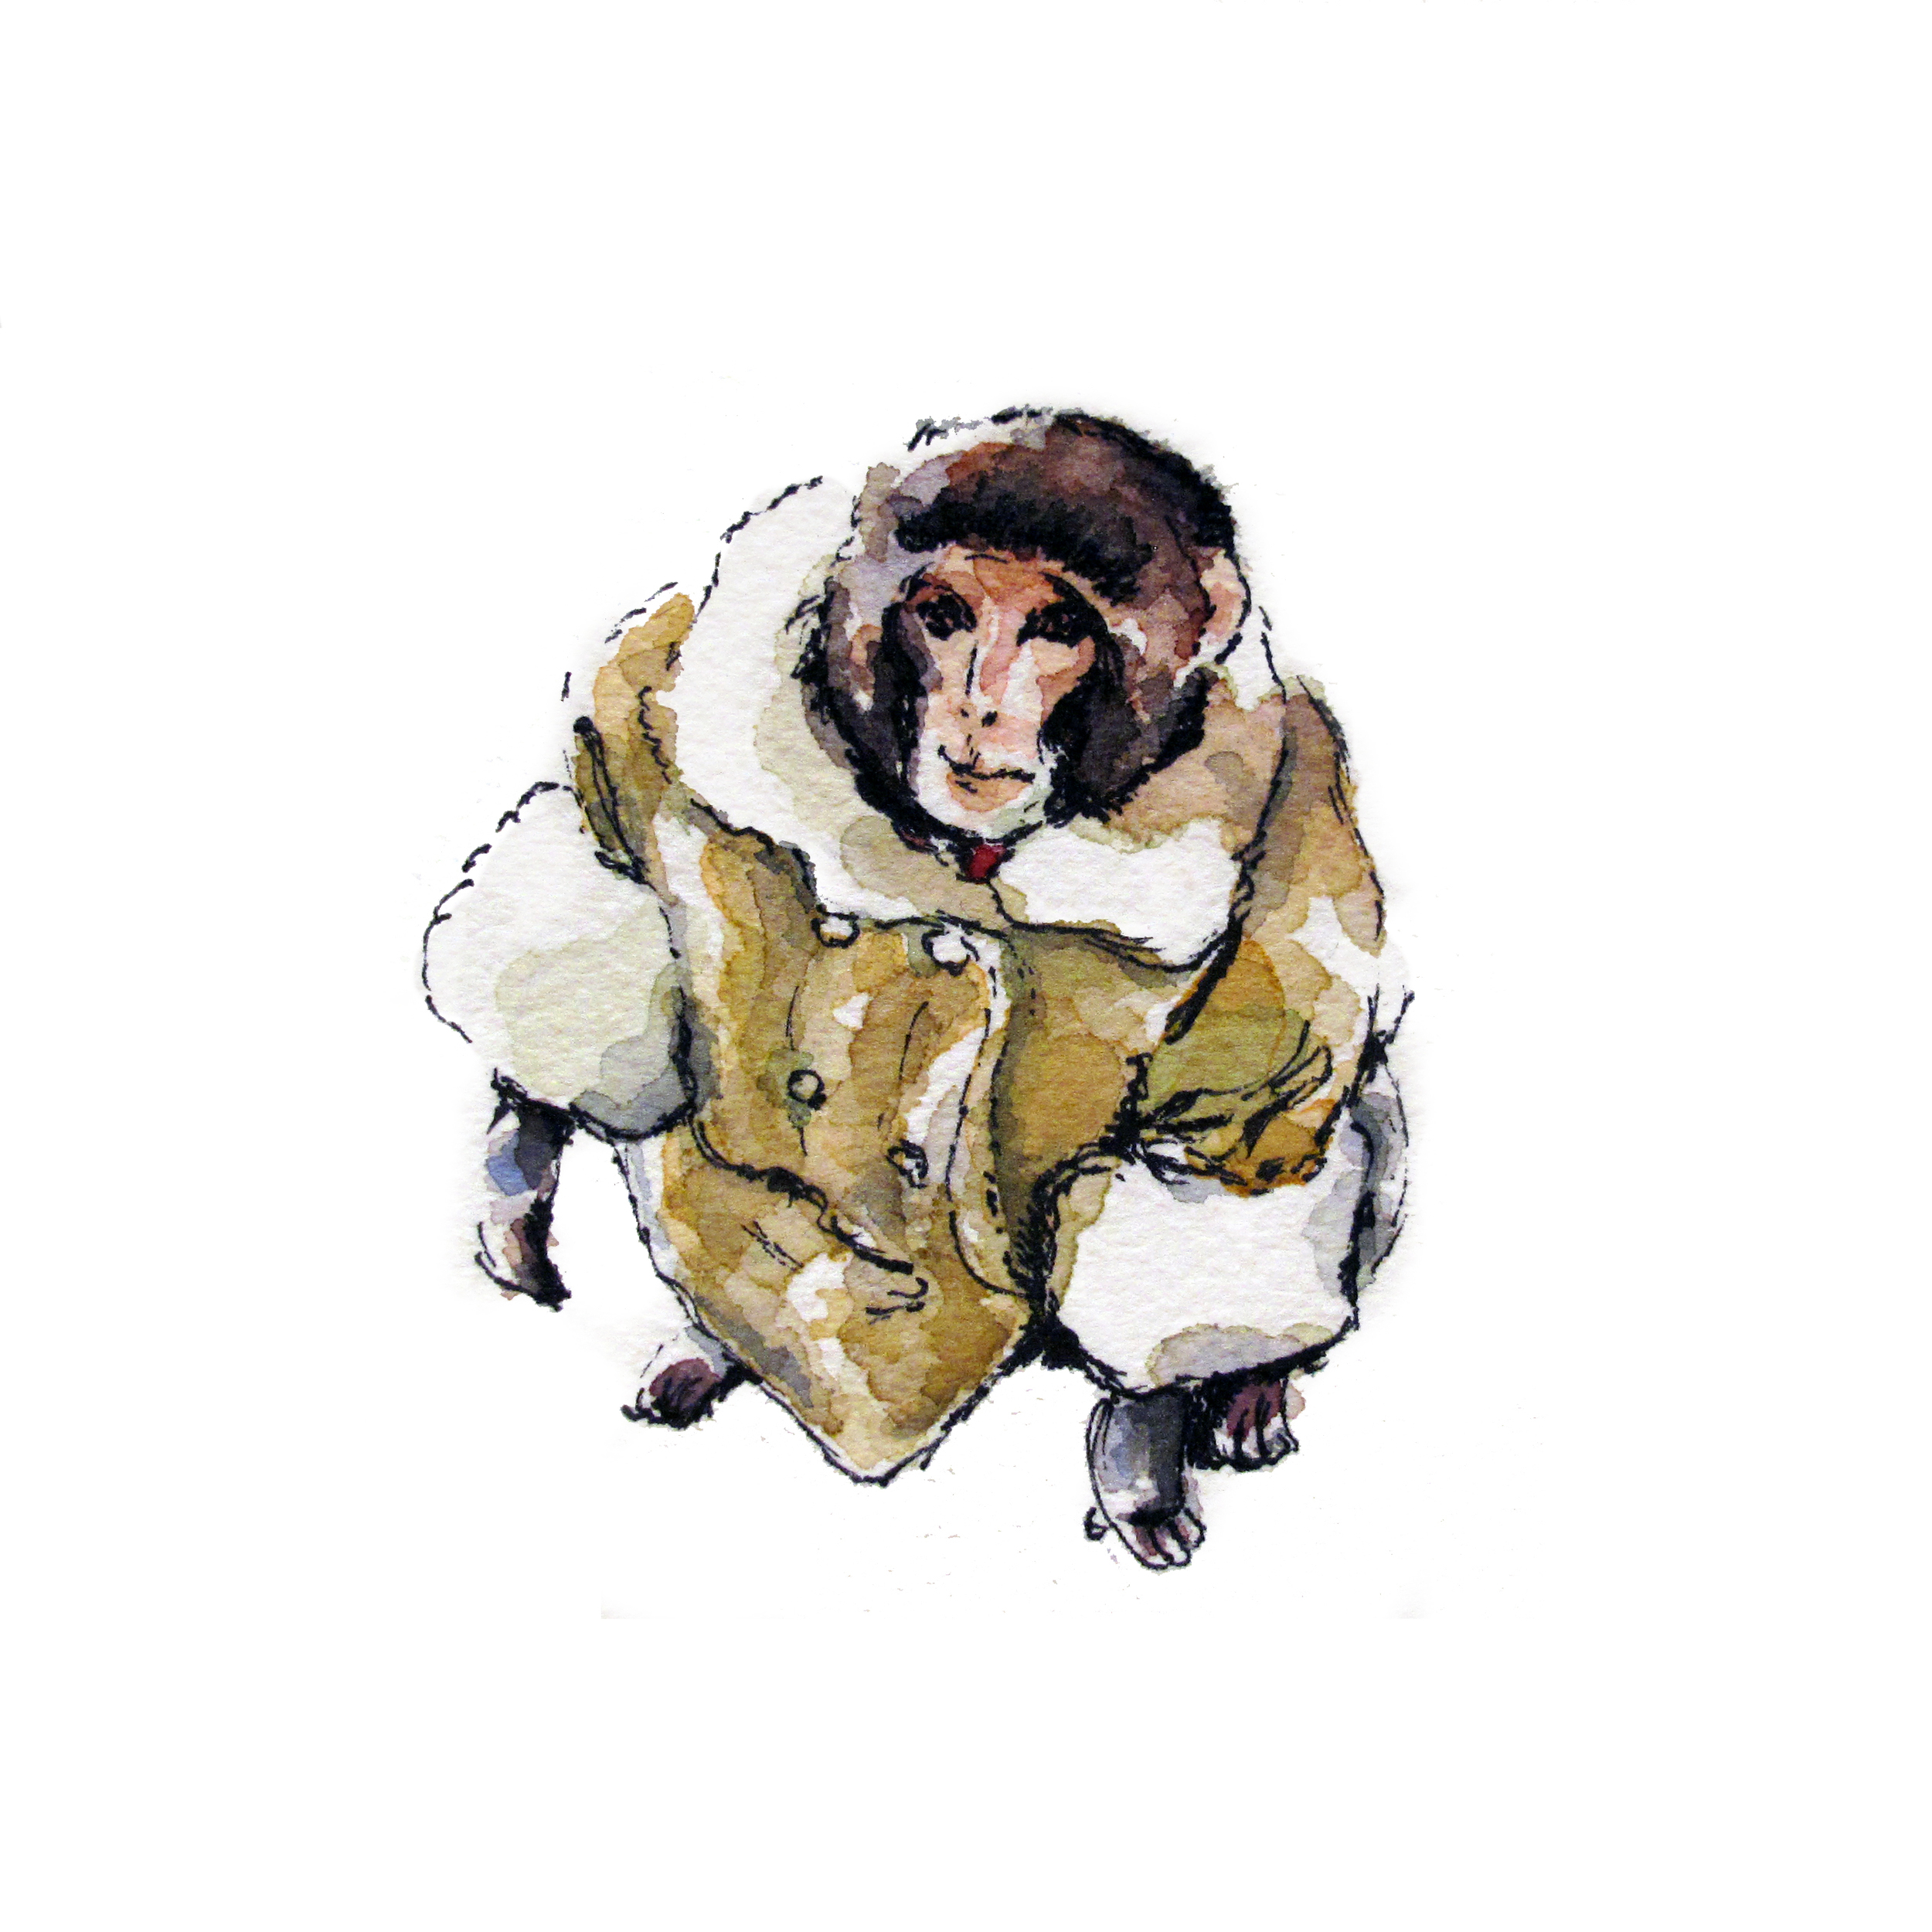 Darwin, the IKEA monkey